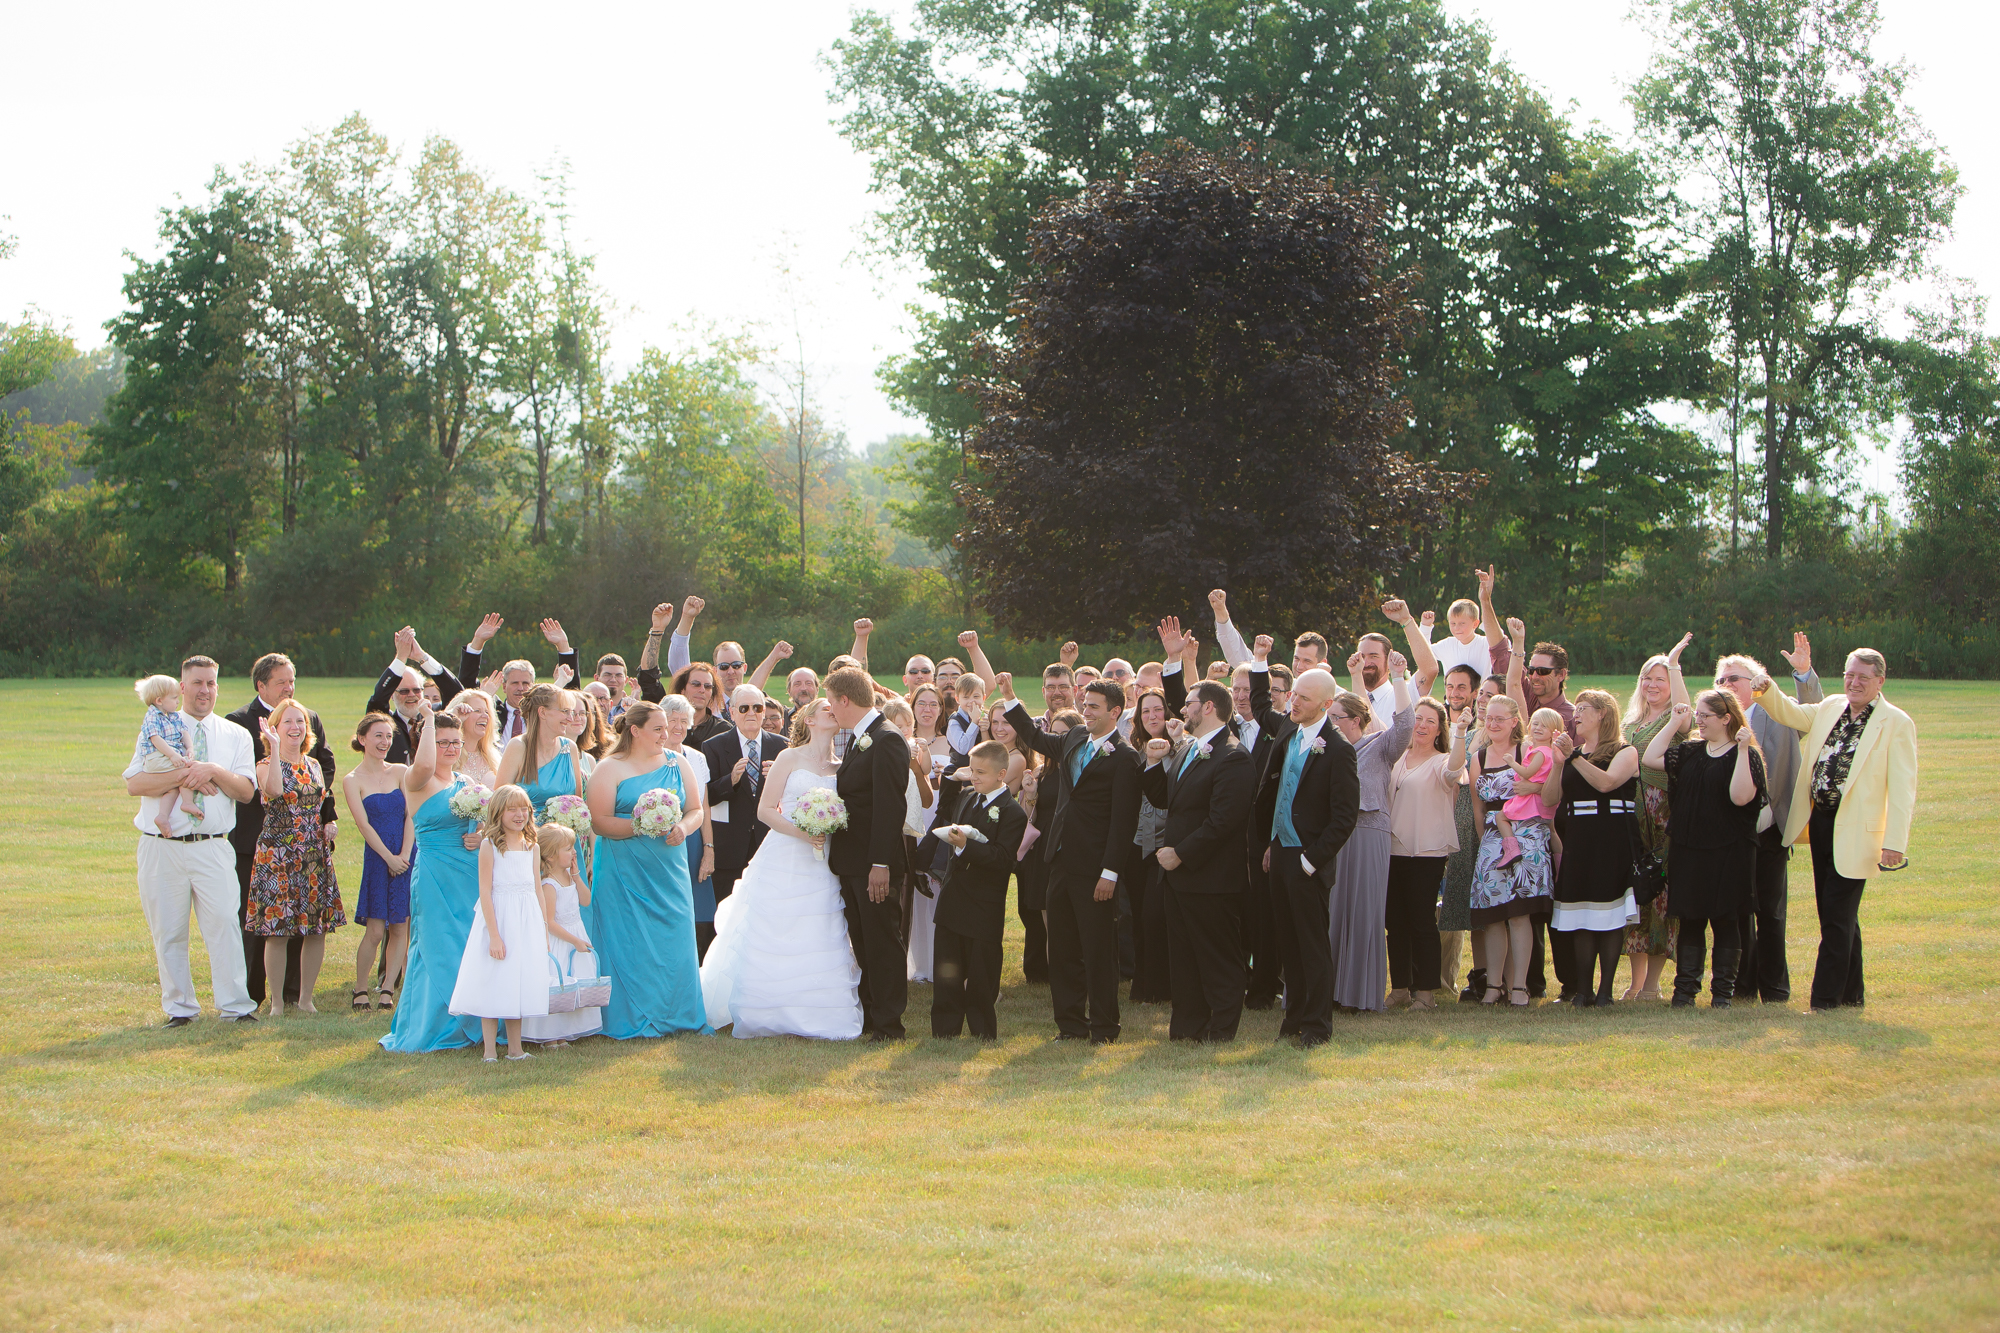 Wedding guests at Celebrations Banquet Facility in Ithaca, NY